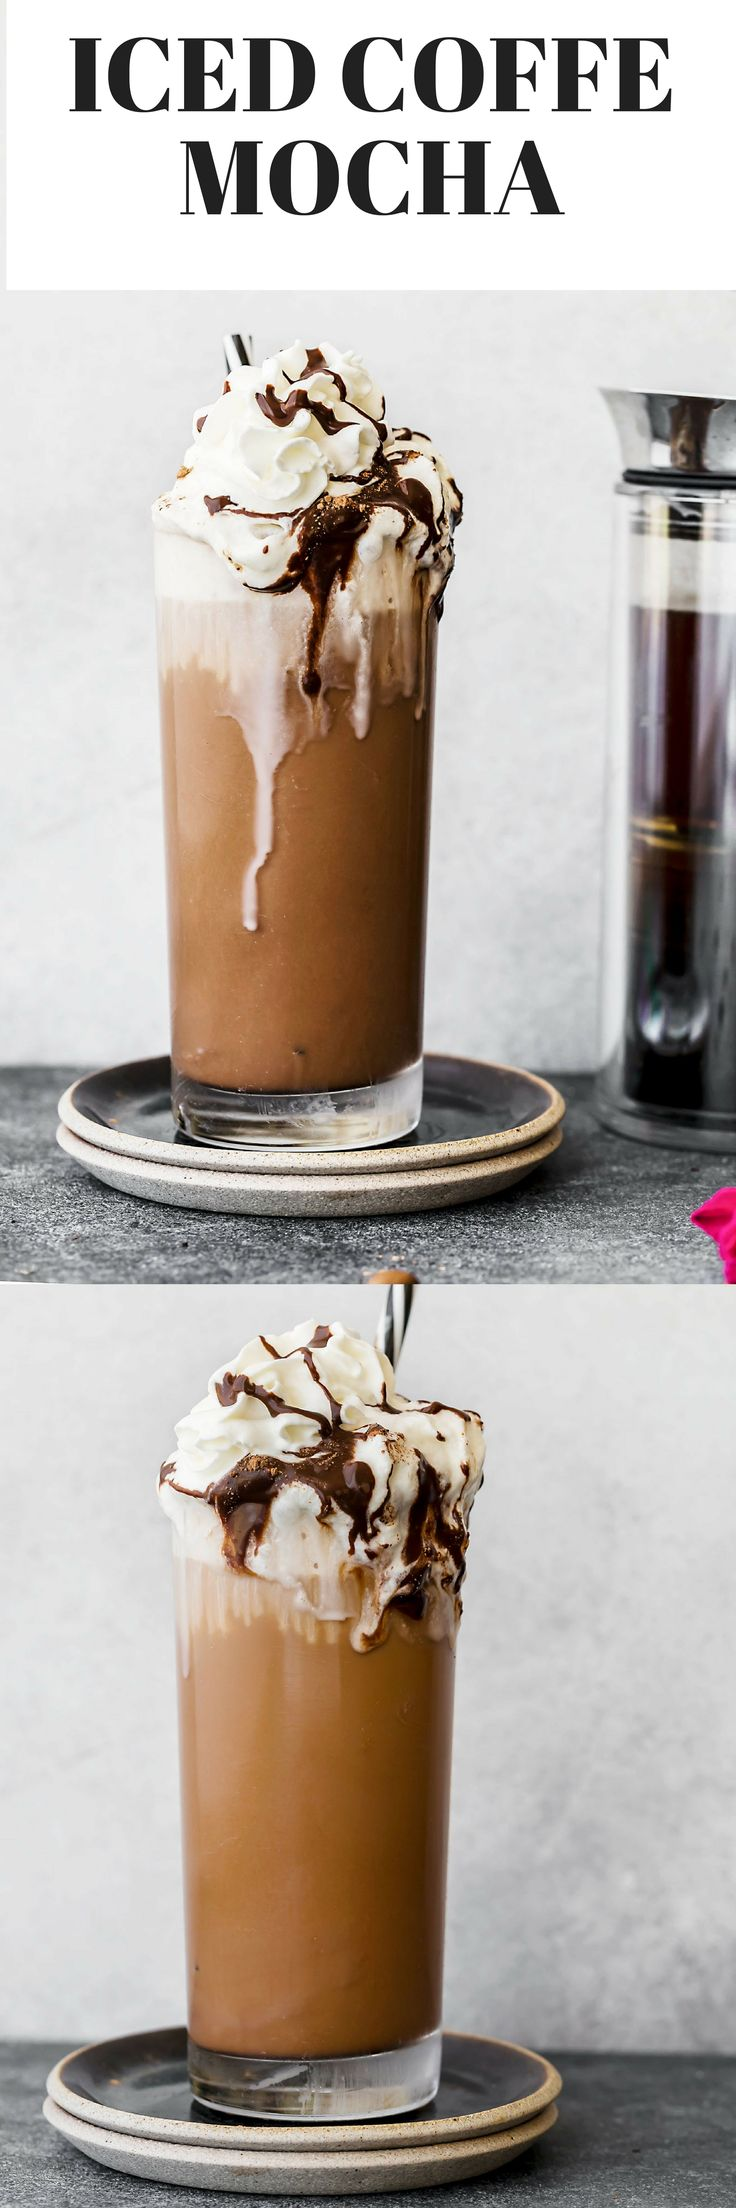 Learn how to make an iced coffee mocha recipe at home. Brewed coffee served with homemade chocolate syrup, ice, and whipped cream. #AD #ItsAmericanPress